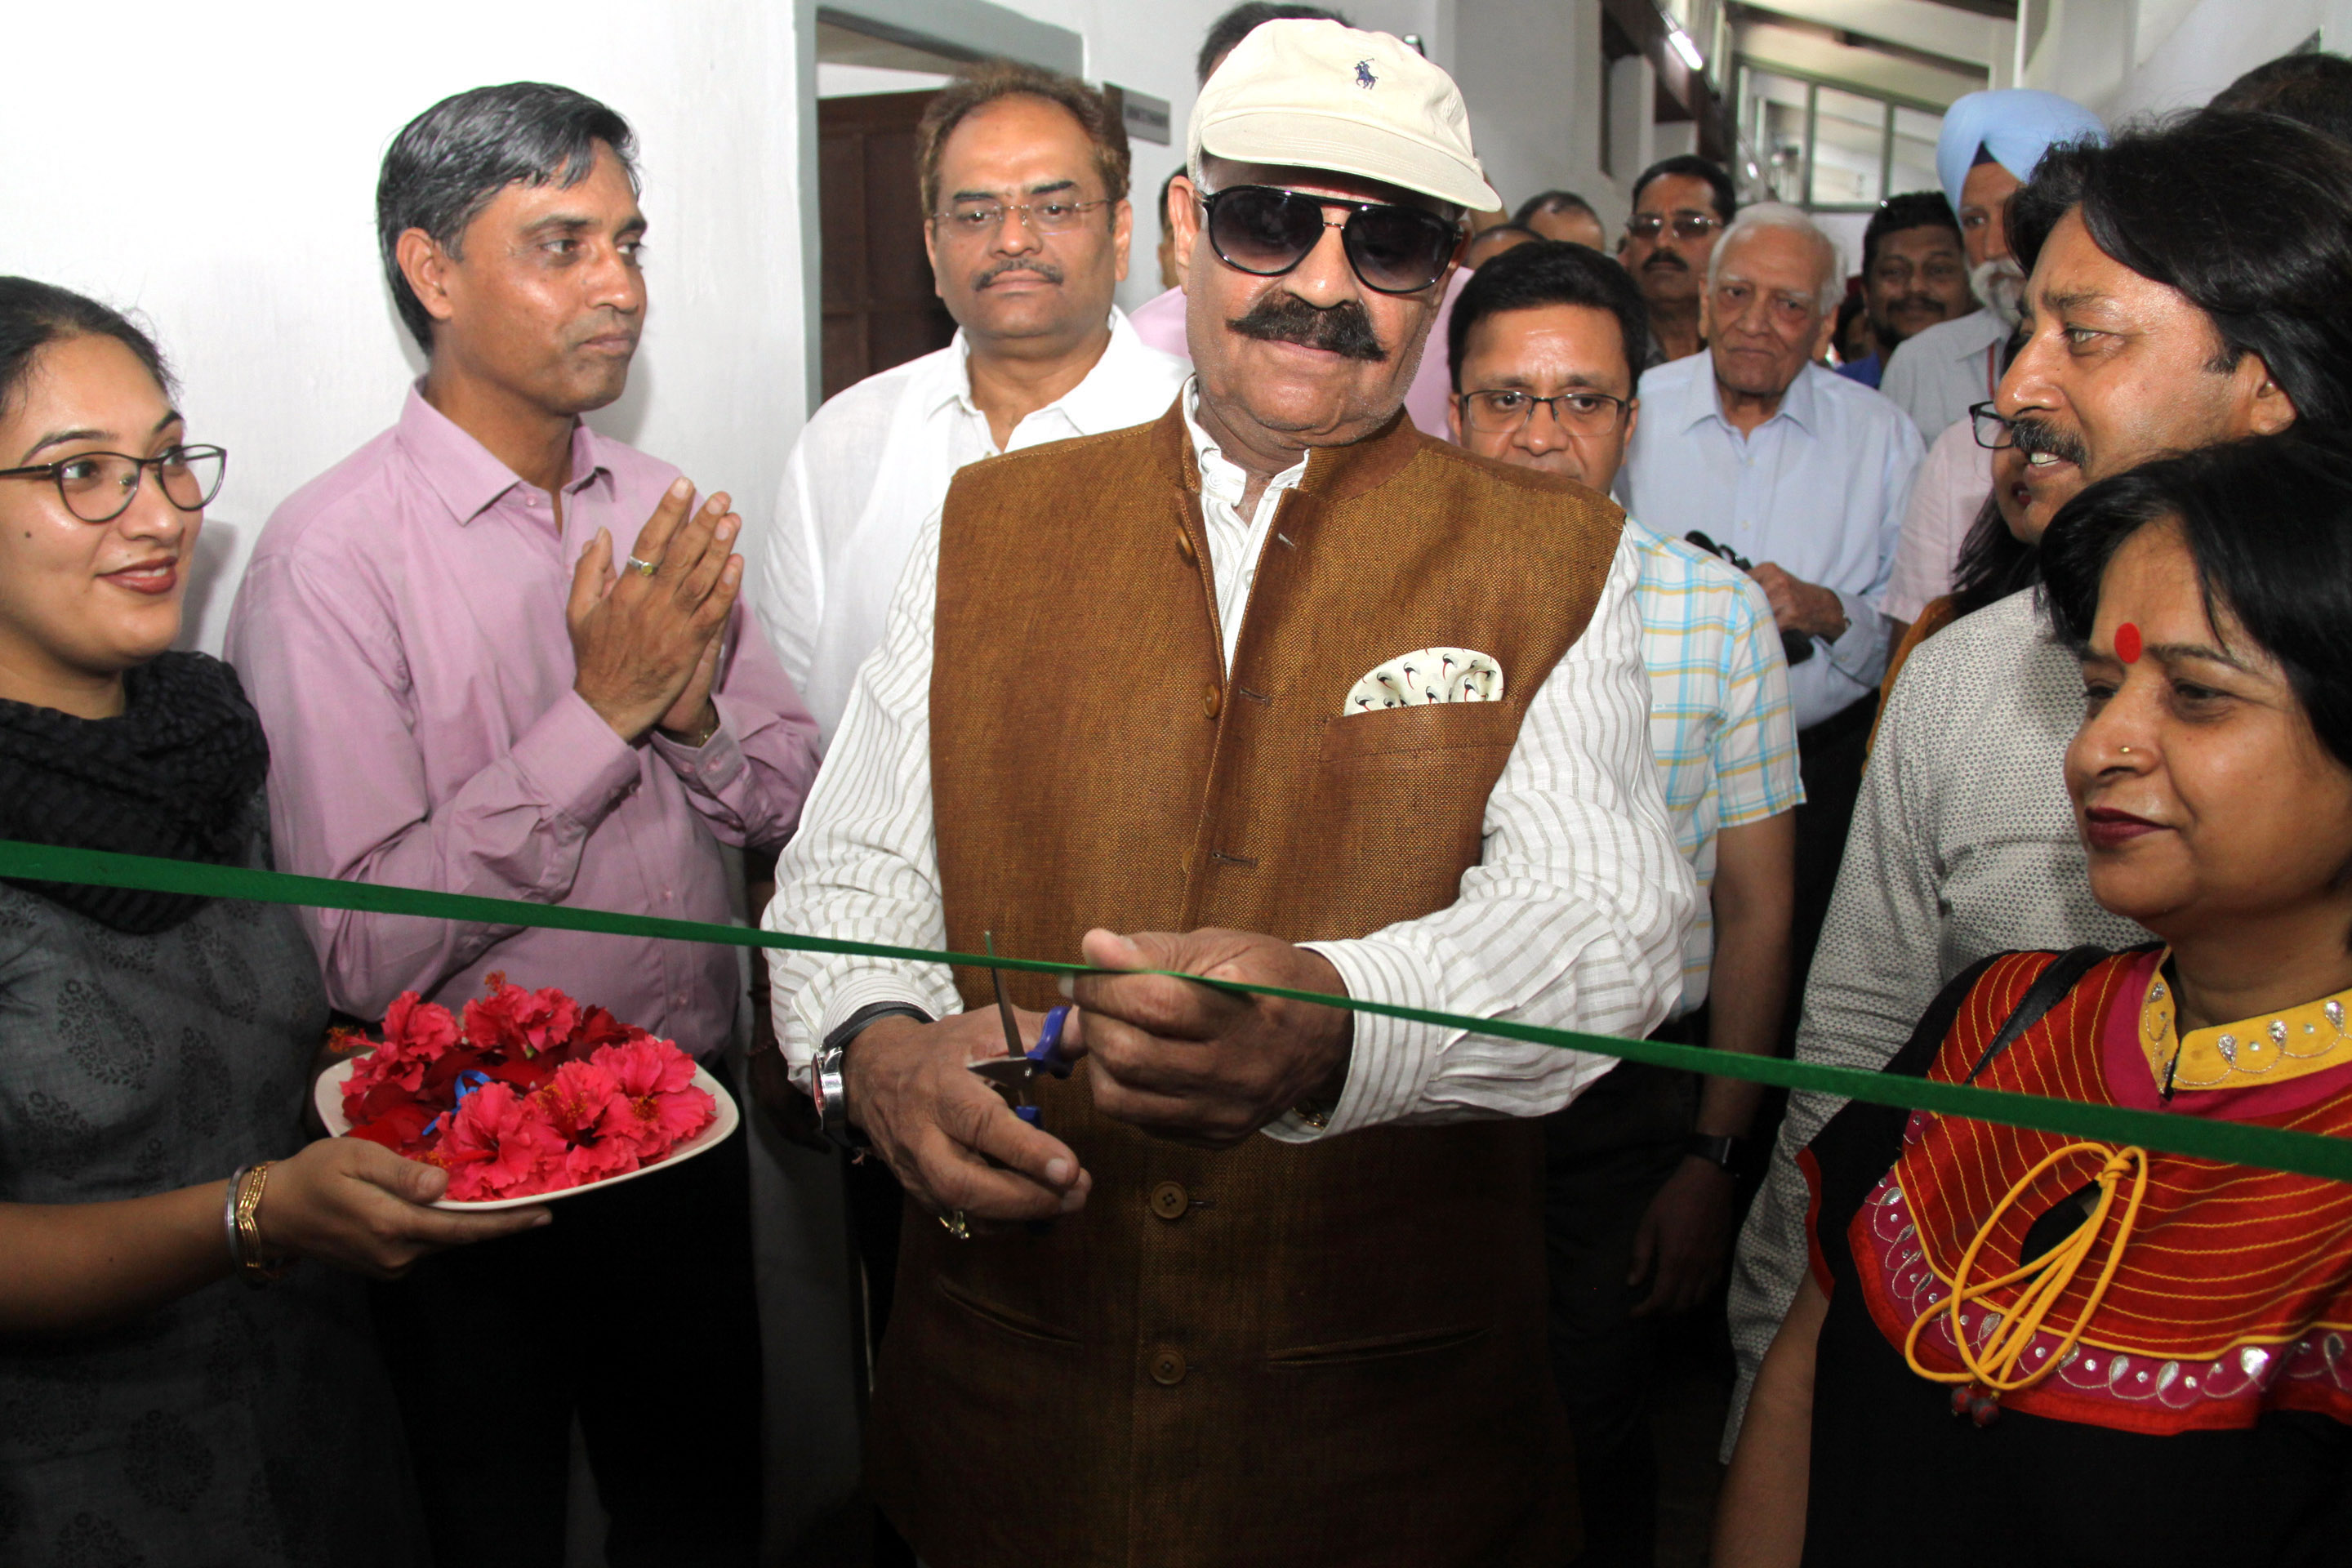 """The Governor of Punjab and Administrator, UT, Chandigarh, Shri V.P. Singh Badnore alongwith the Adviser to the Administrator, UT, Chandigarh, Shri Parimal Rai inaugurating the """"Open Hand Art Studio"""" on the occasion of 122nd Birth Anniversary of Pierre Jeanneret at Le Corbusier Centre, Sector-19, Chandigarh on Tuesday, April 17, 2018."""